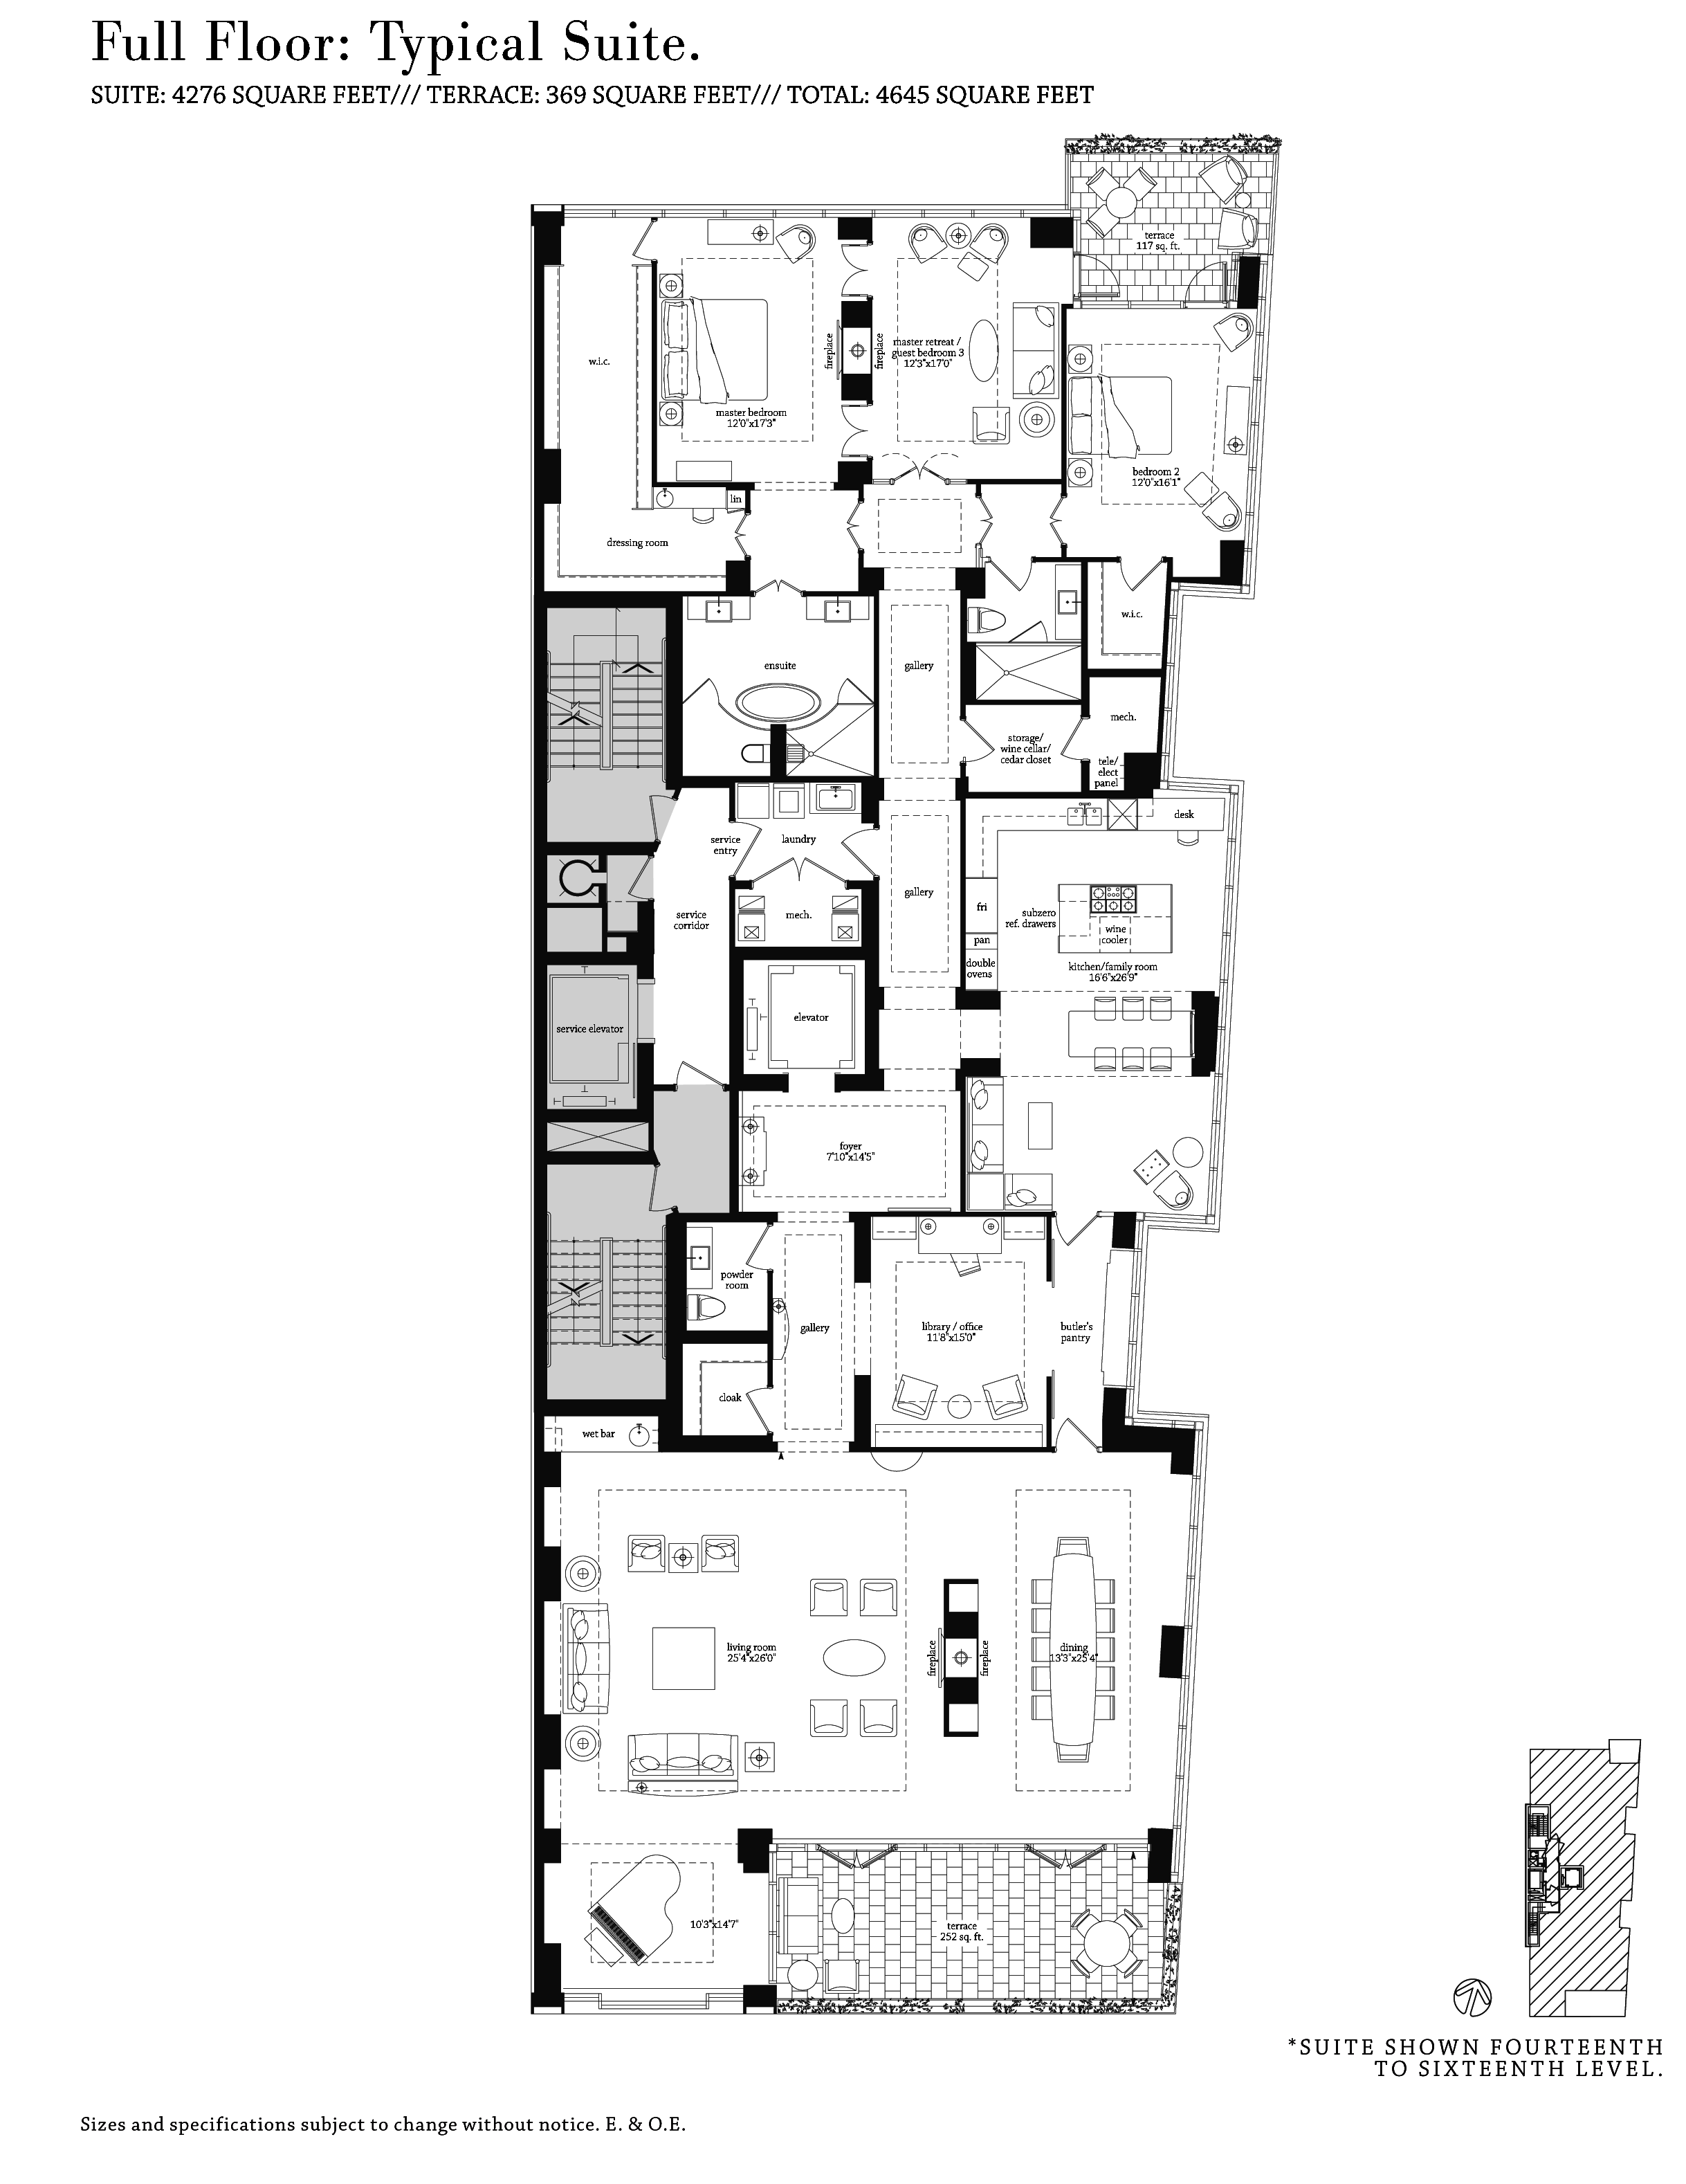 4200 sq ft house plans 28 images 4200 sq ft 4 5 bhk 6t for 4200 sq ft house plans